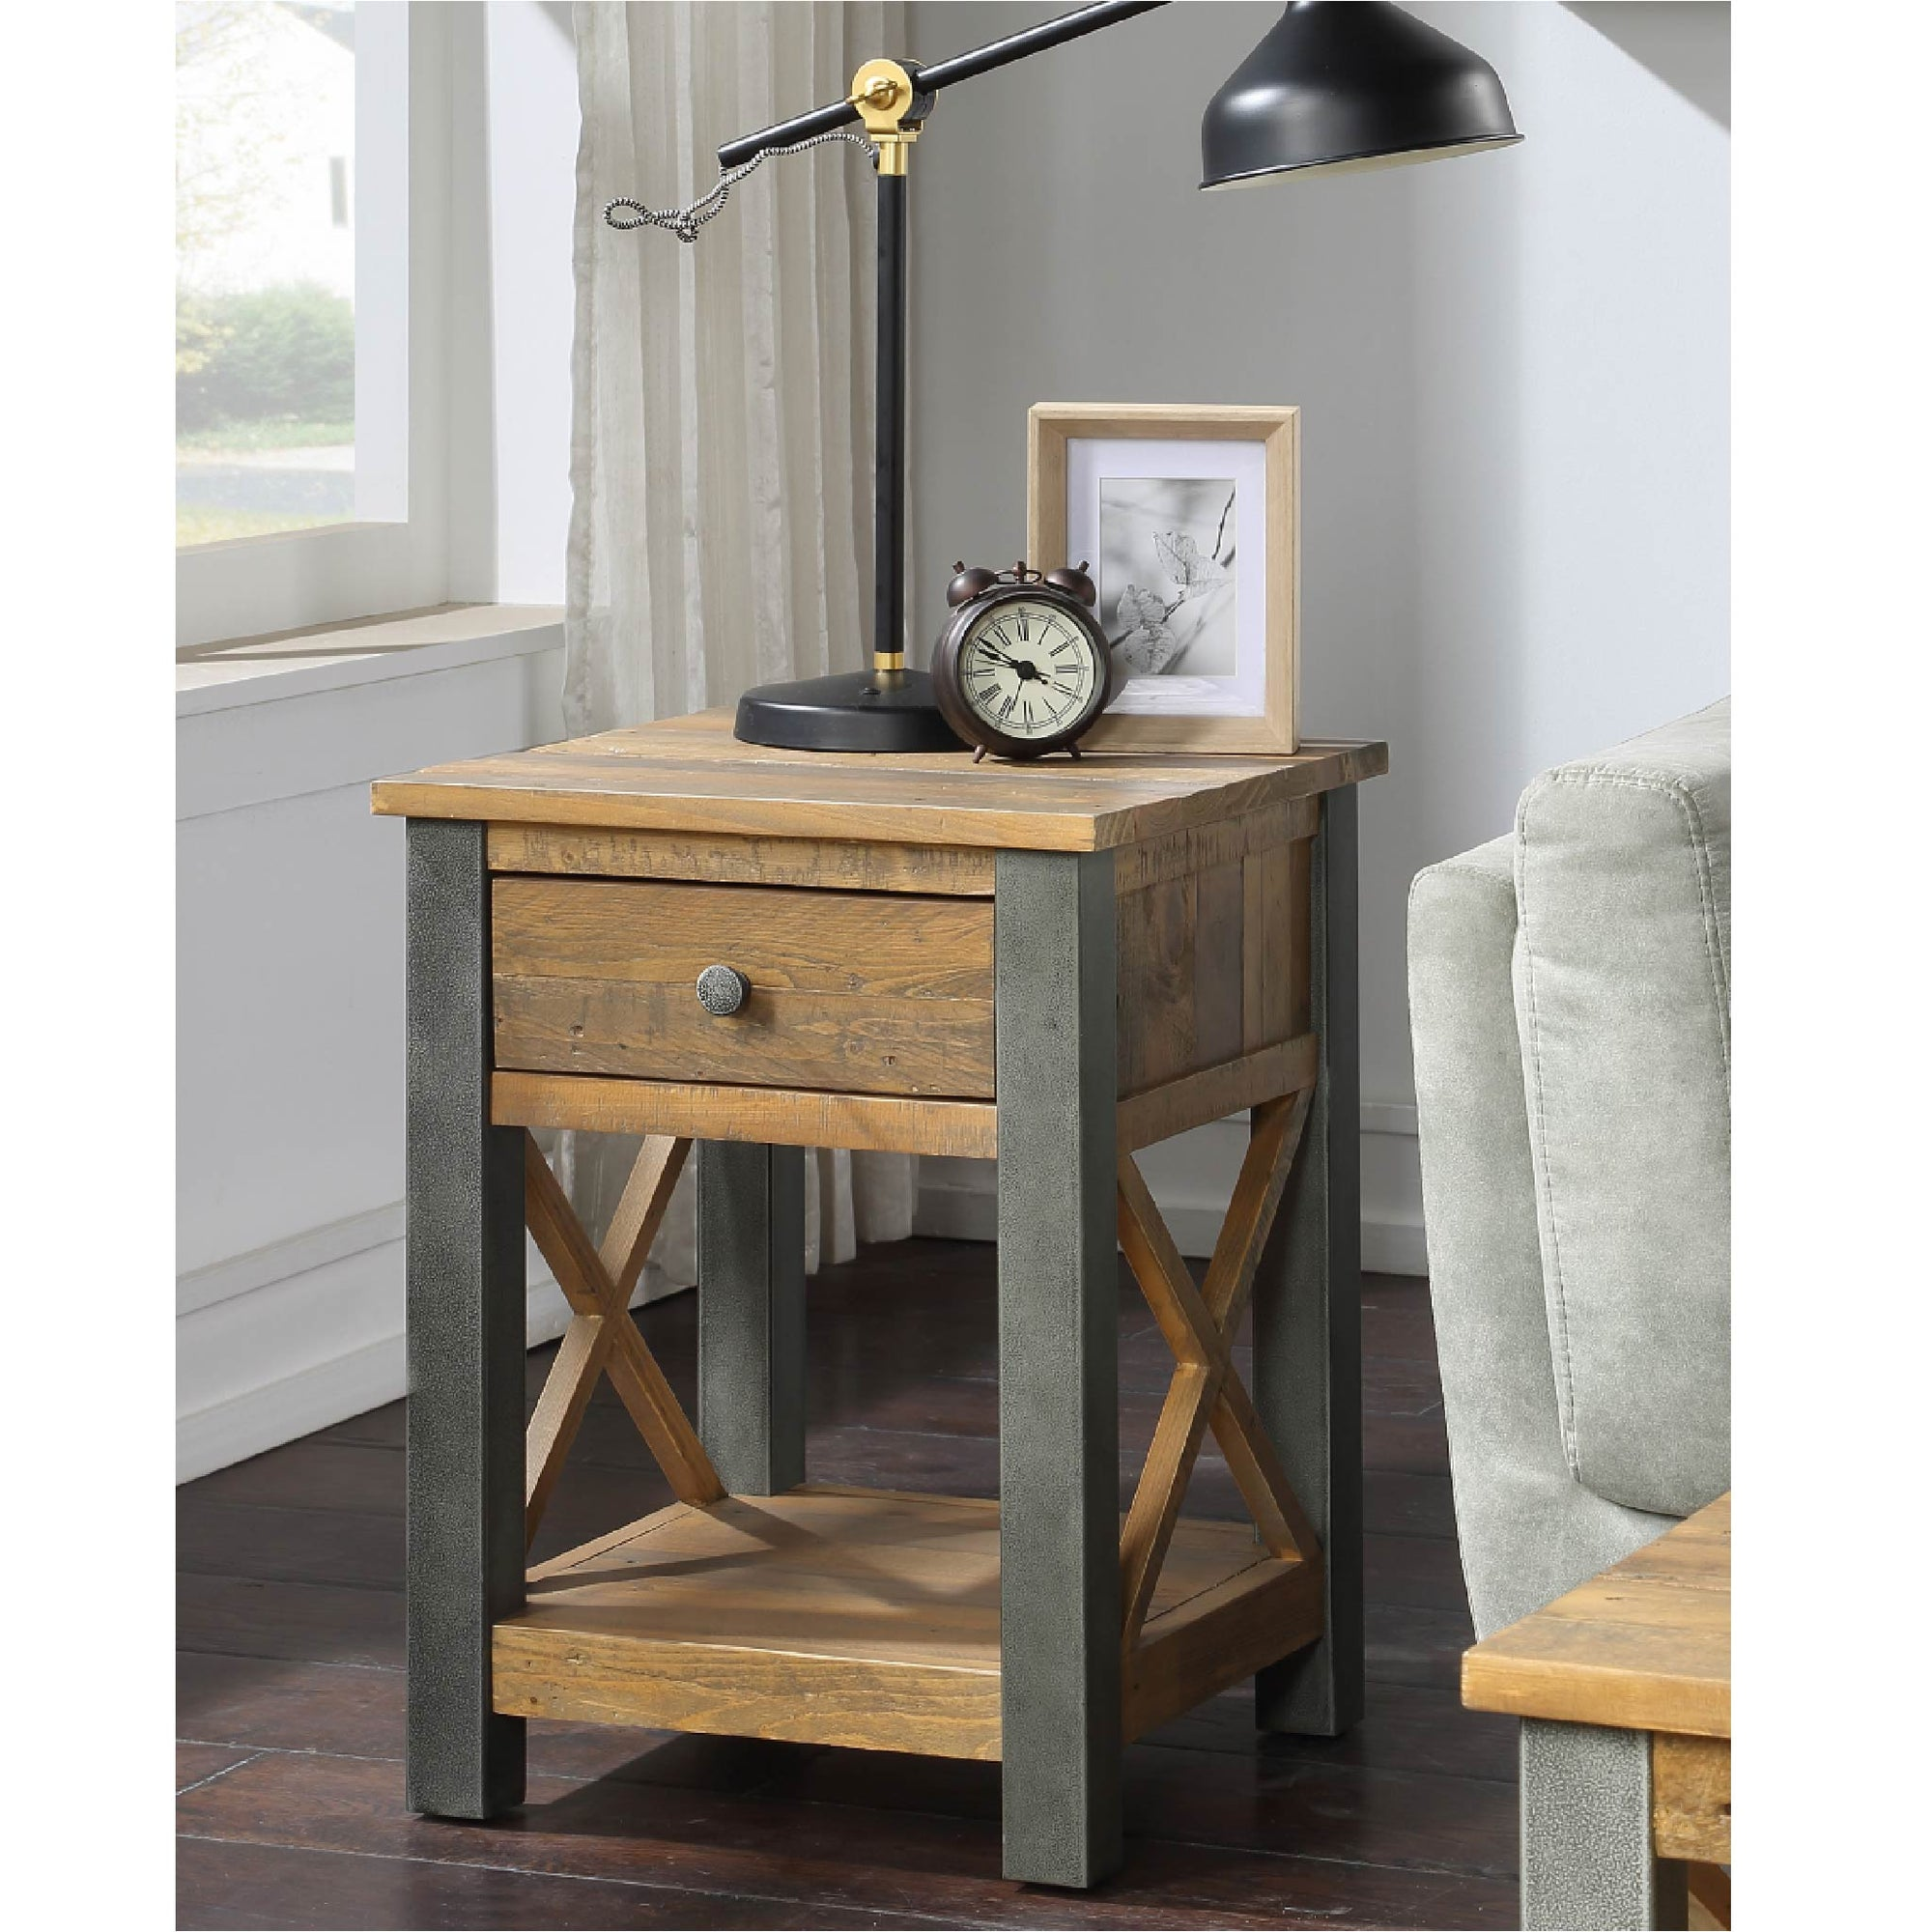 Urban Elegance Reclaimed Wood Lamp Table with Drawer